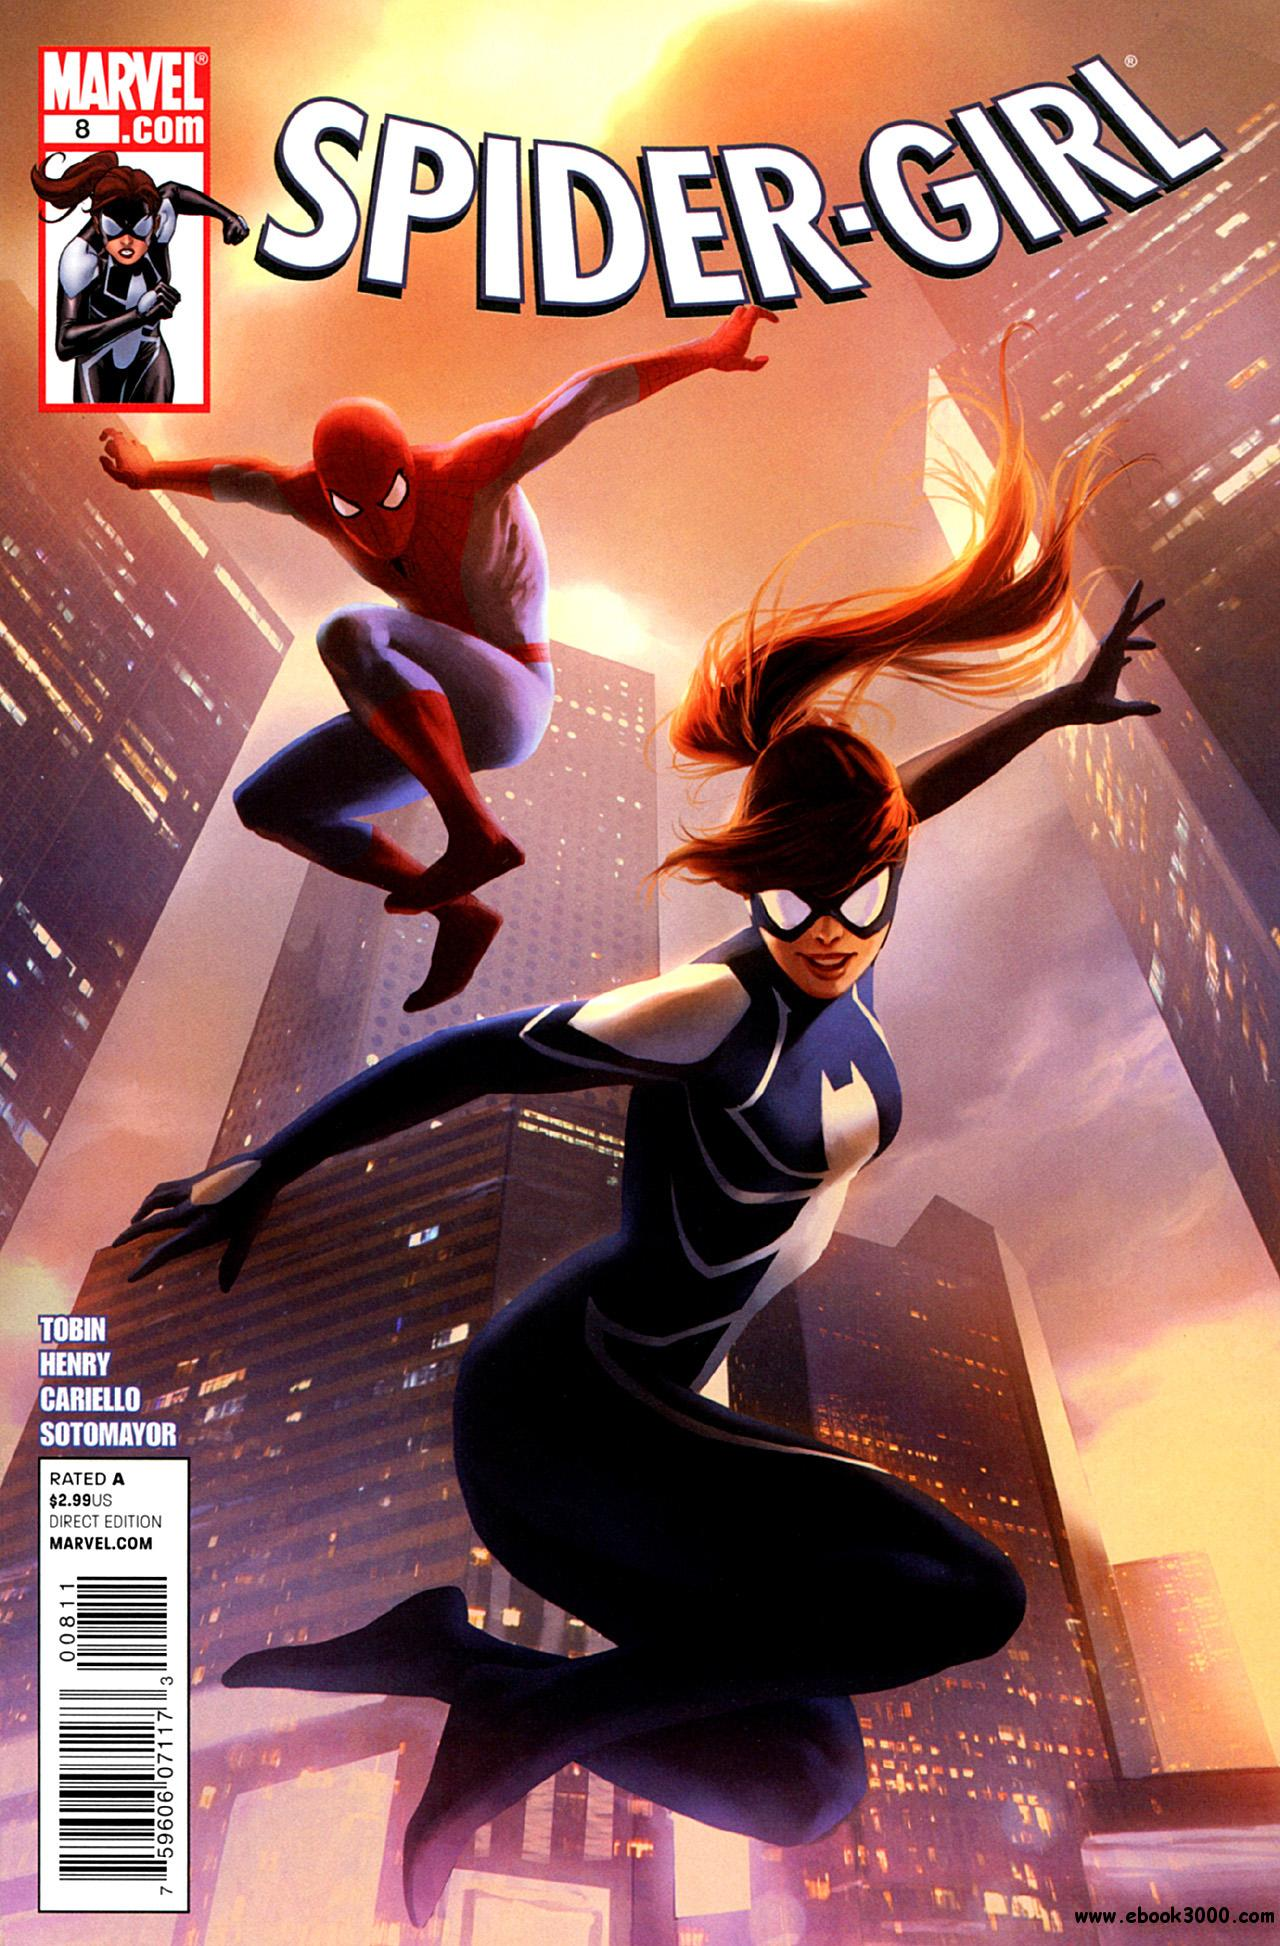 Spider-Girl #8 (2011) free download